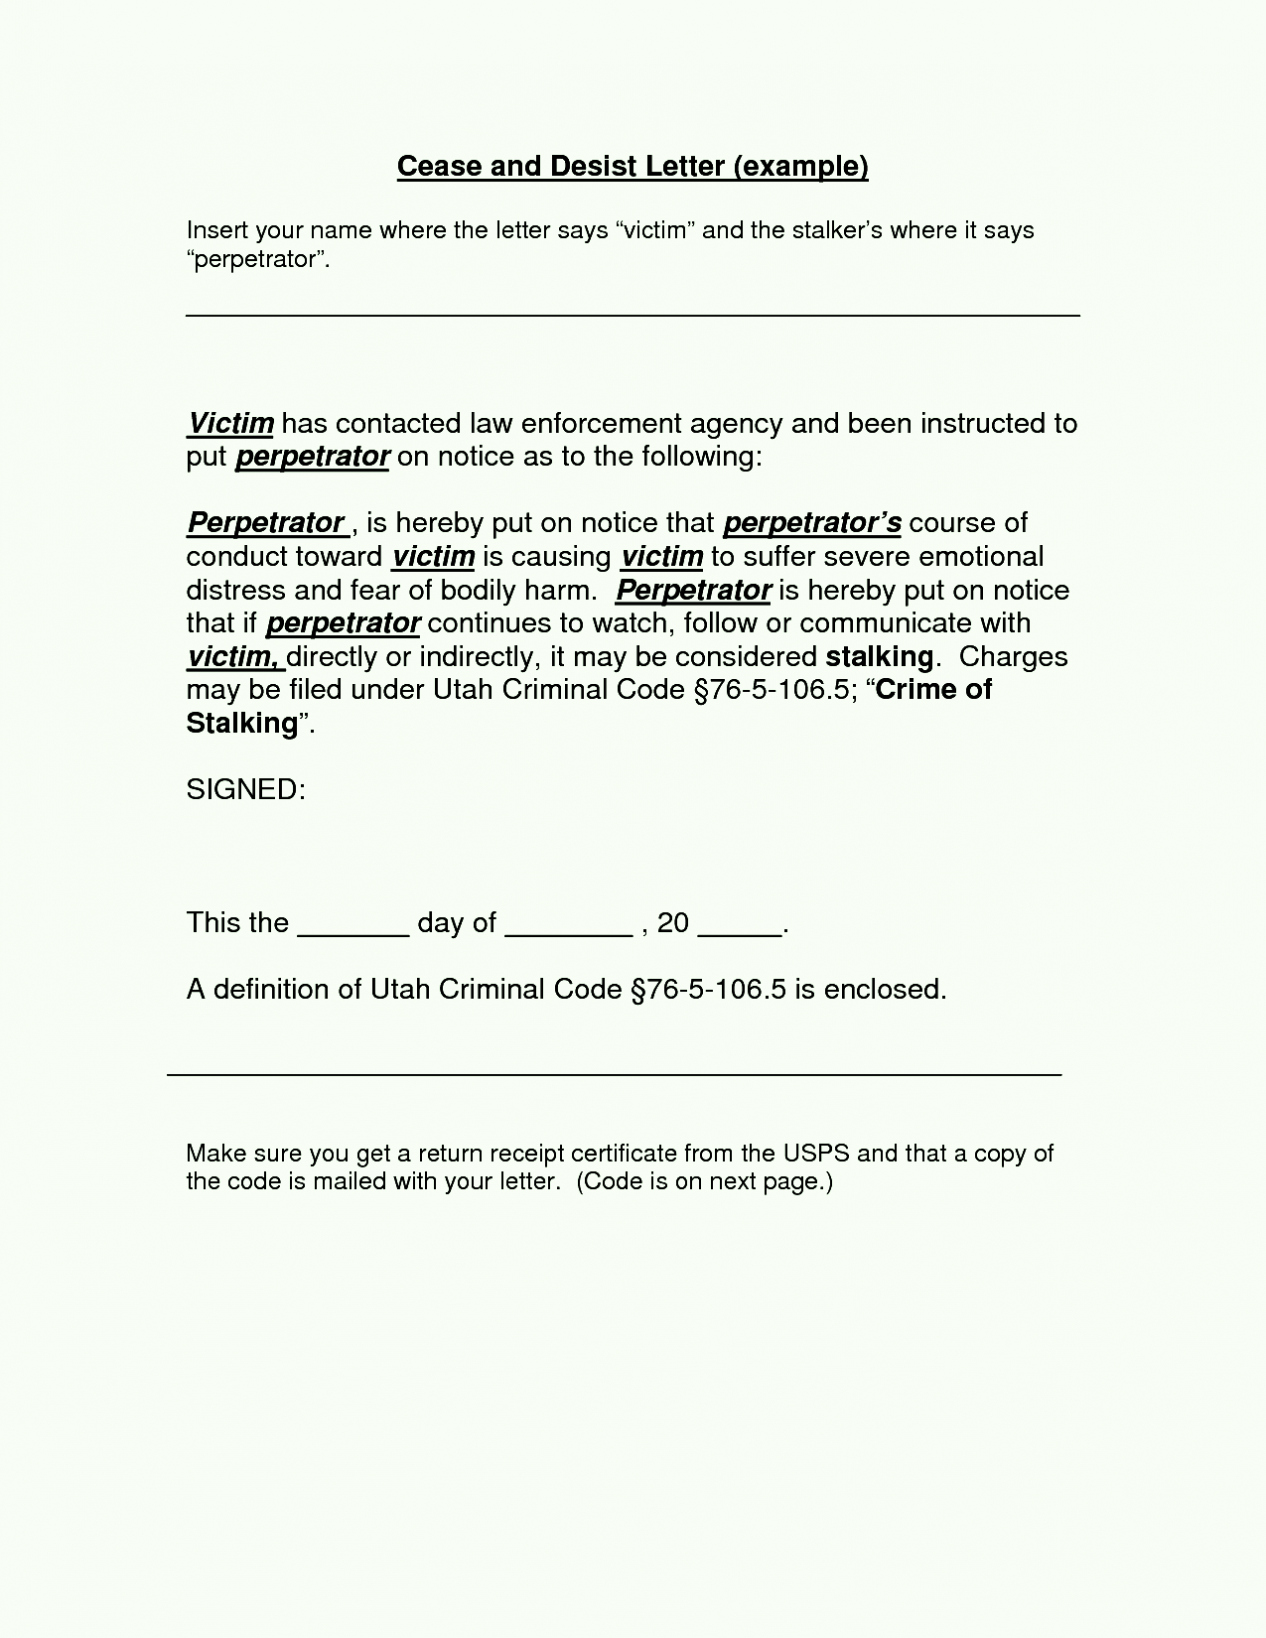 Stop Work order Template Lovely Cease and Desist Letter order Template